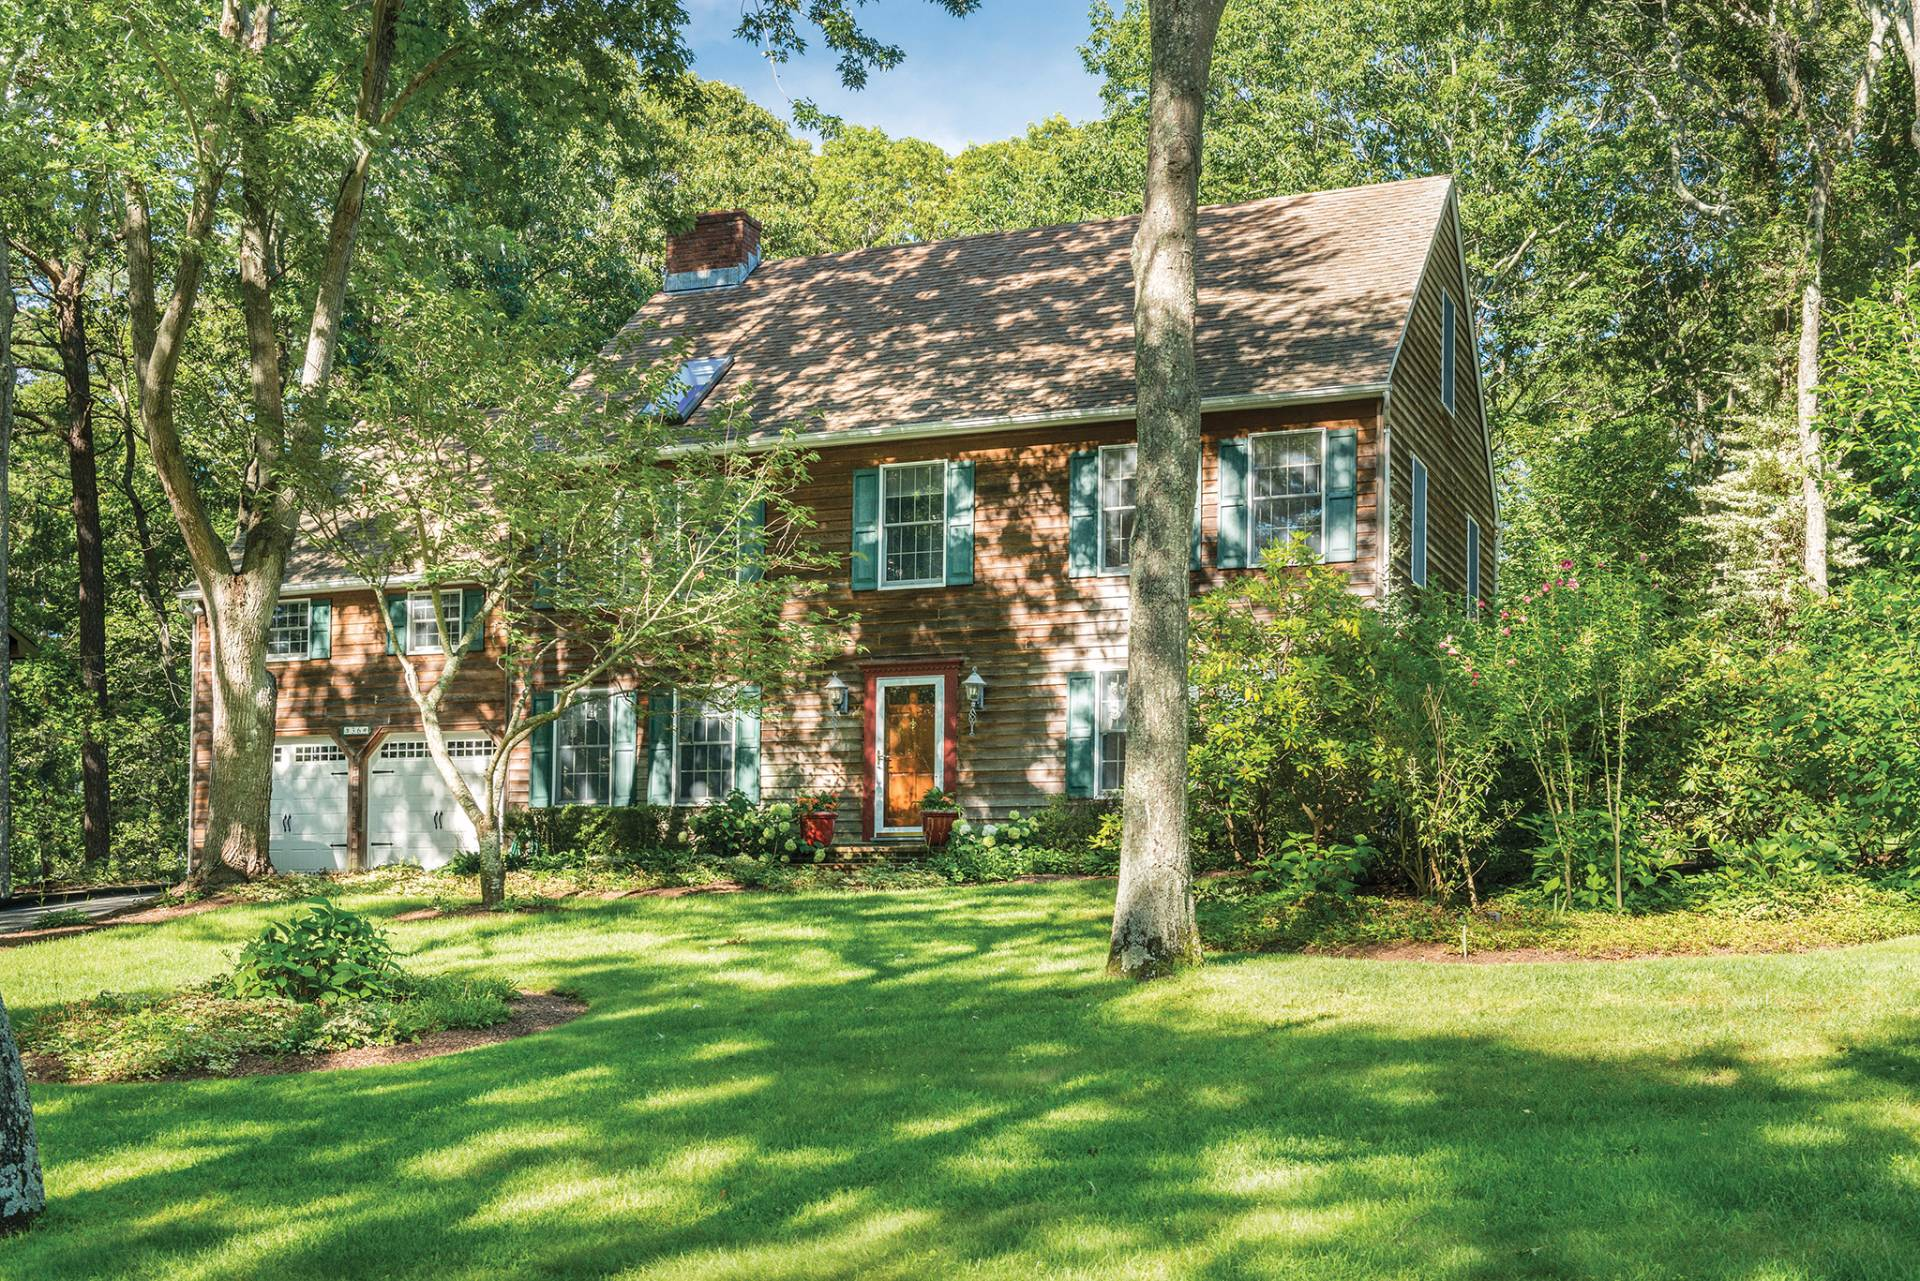 Single Family Home for Sale at Traditional Home In The Hamptons 36 Columbine Avenue North, Hampton Bays, New York